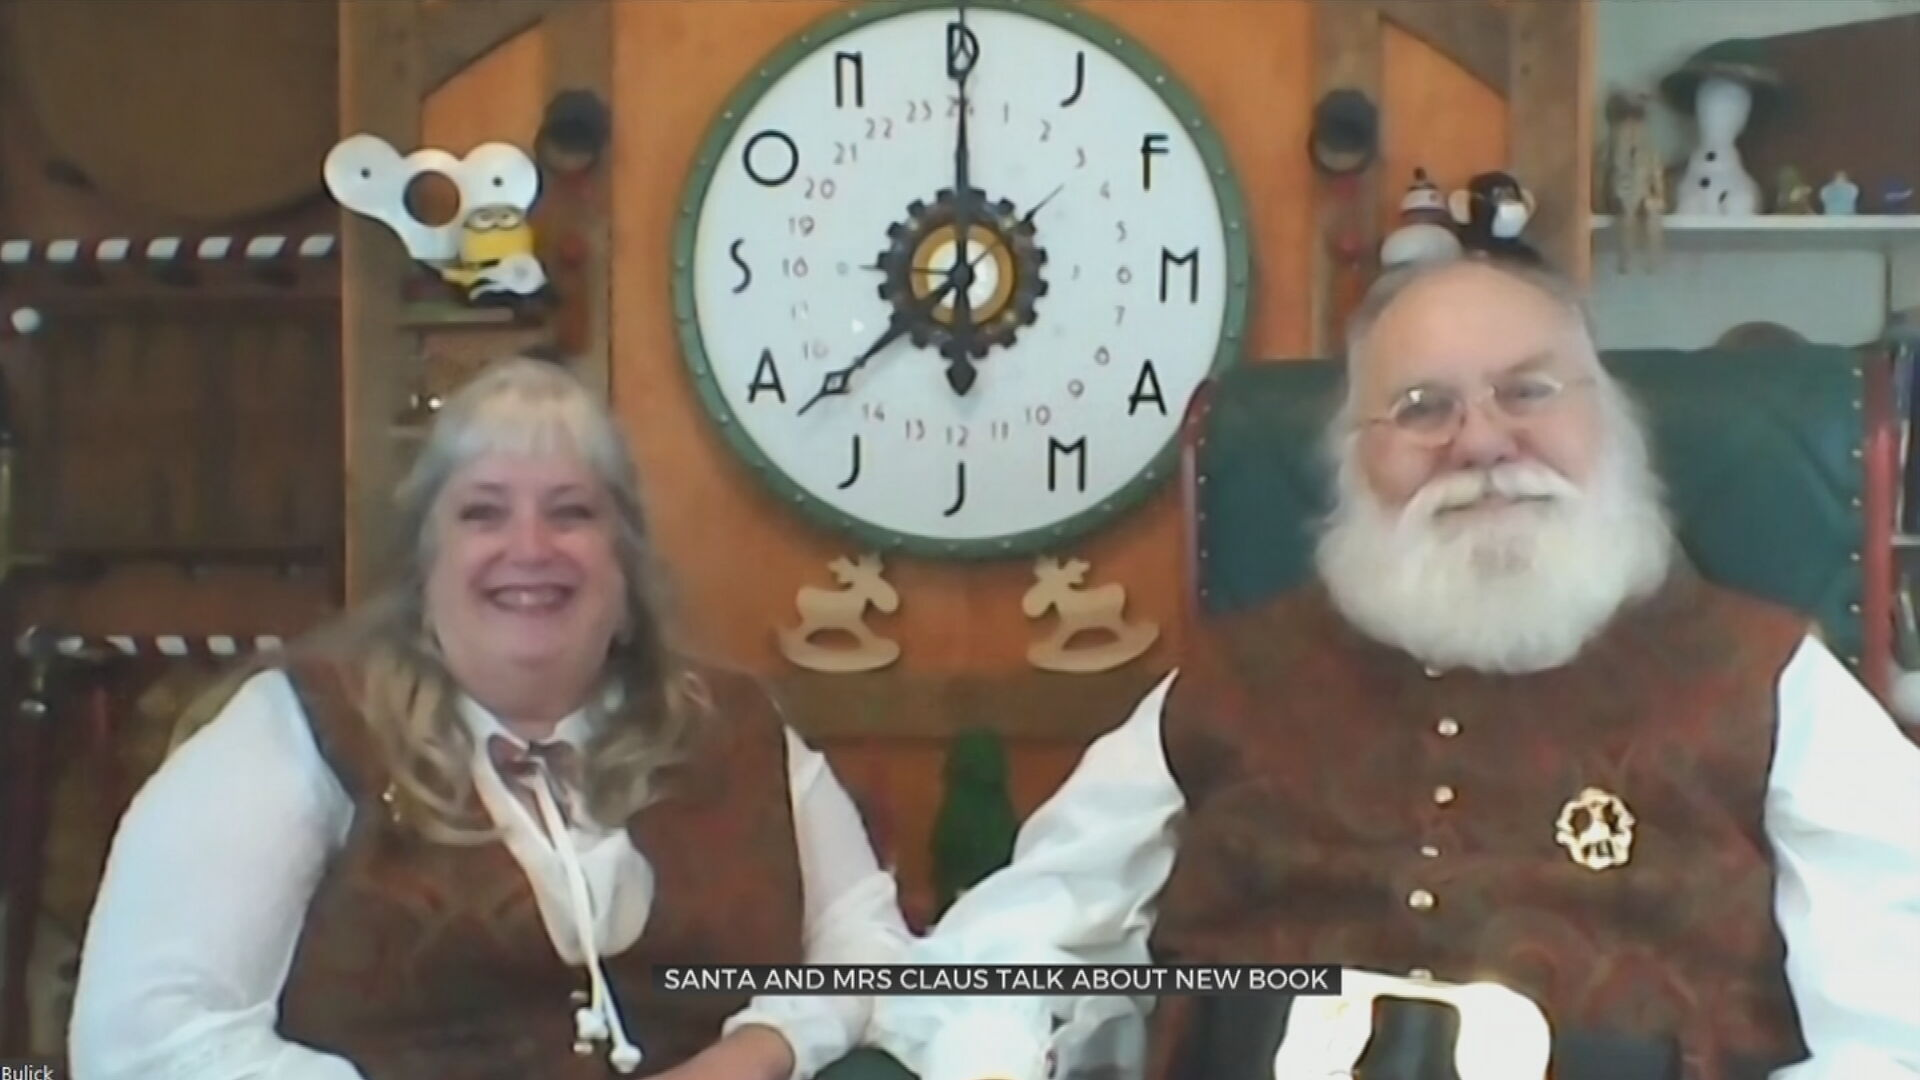 Santa, Mrs. Claus Talk About A New Book